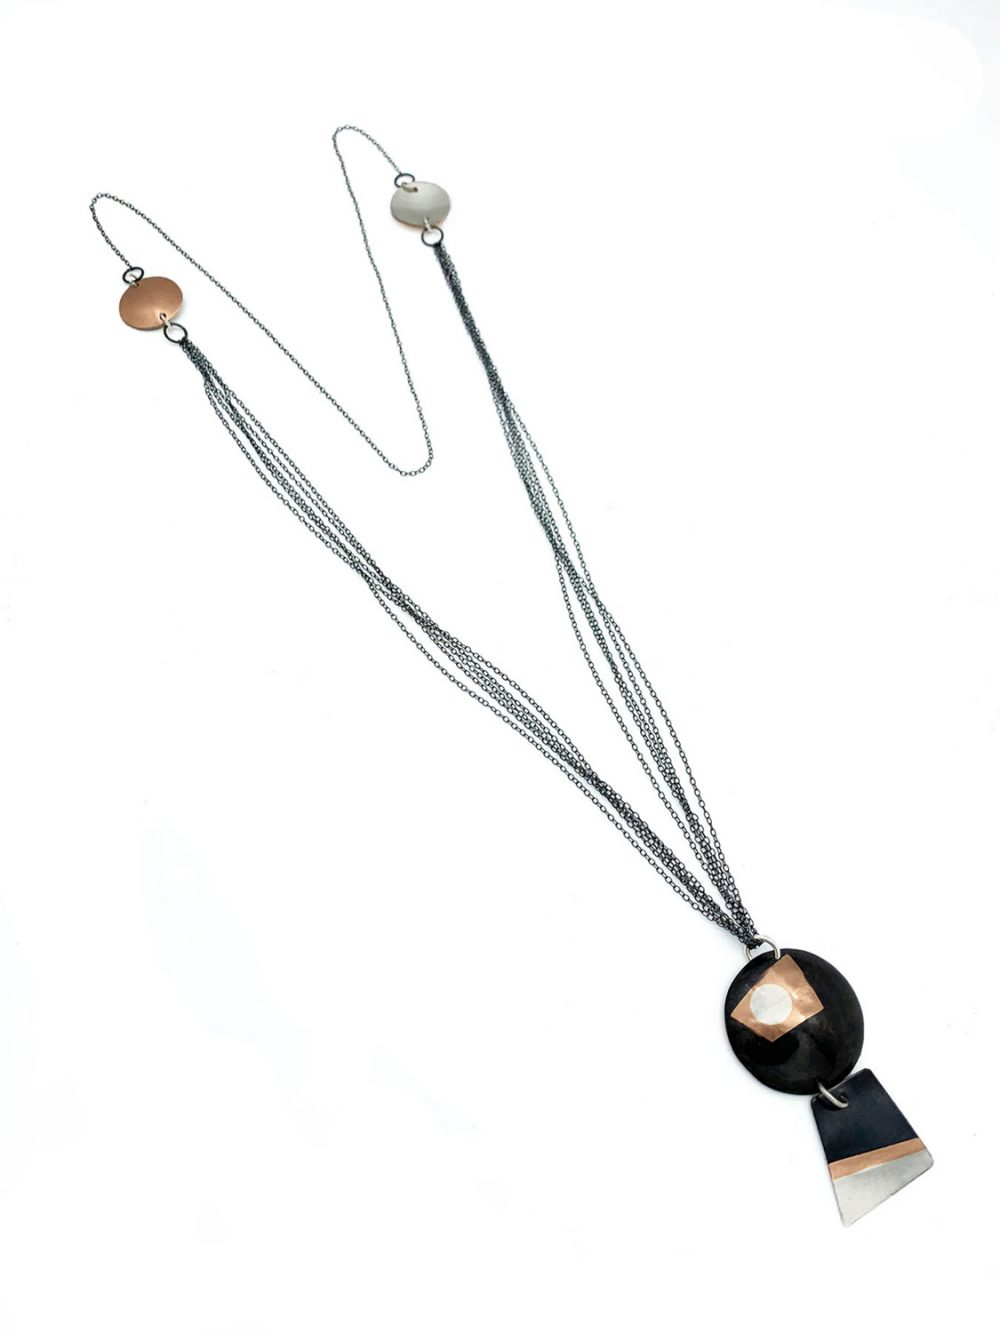 Anna Caraco - Abstract Marriage Copper Silver Necklace